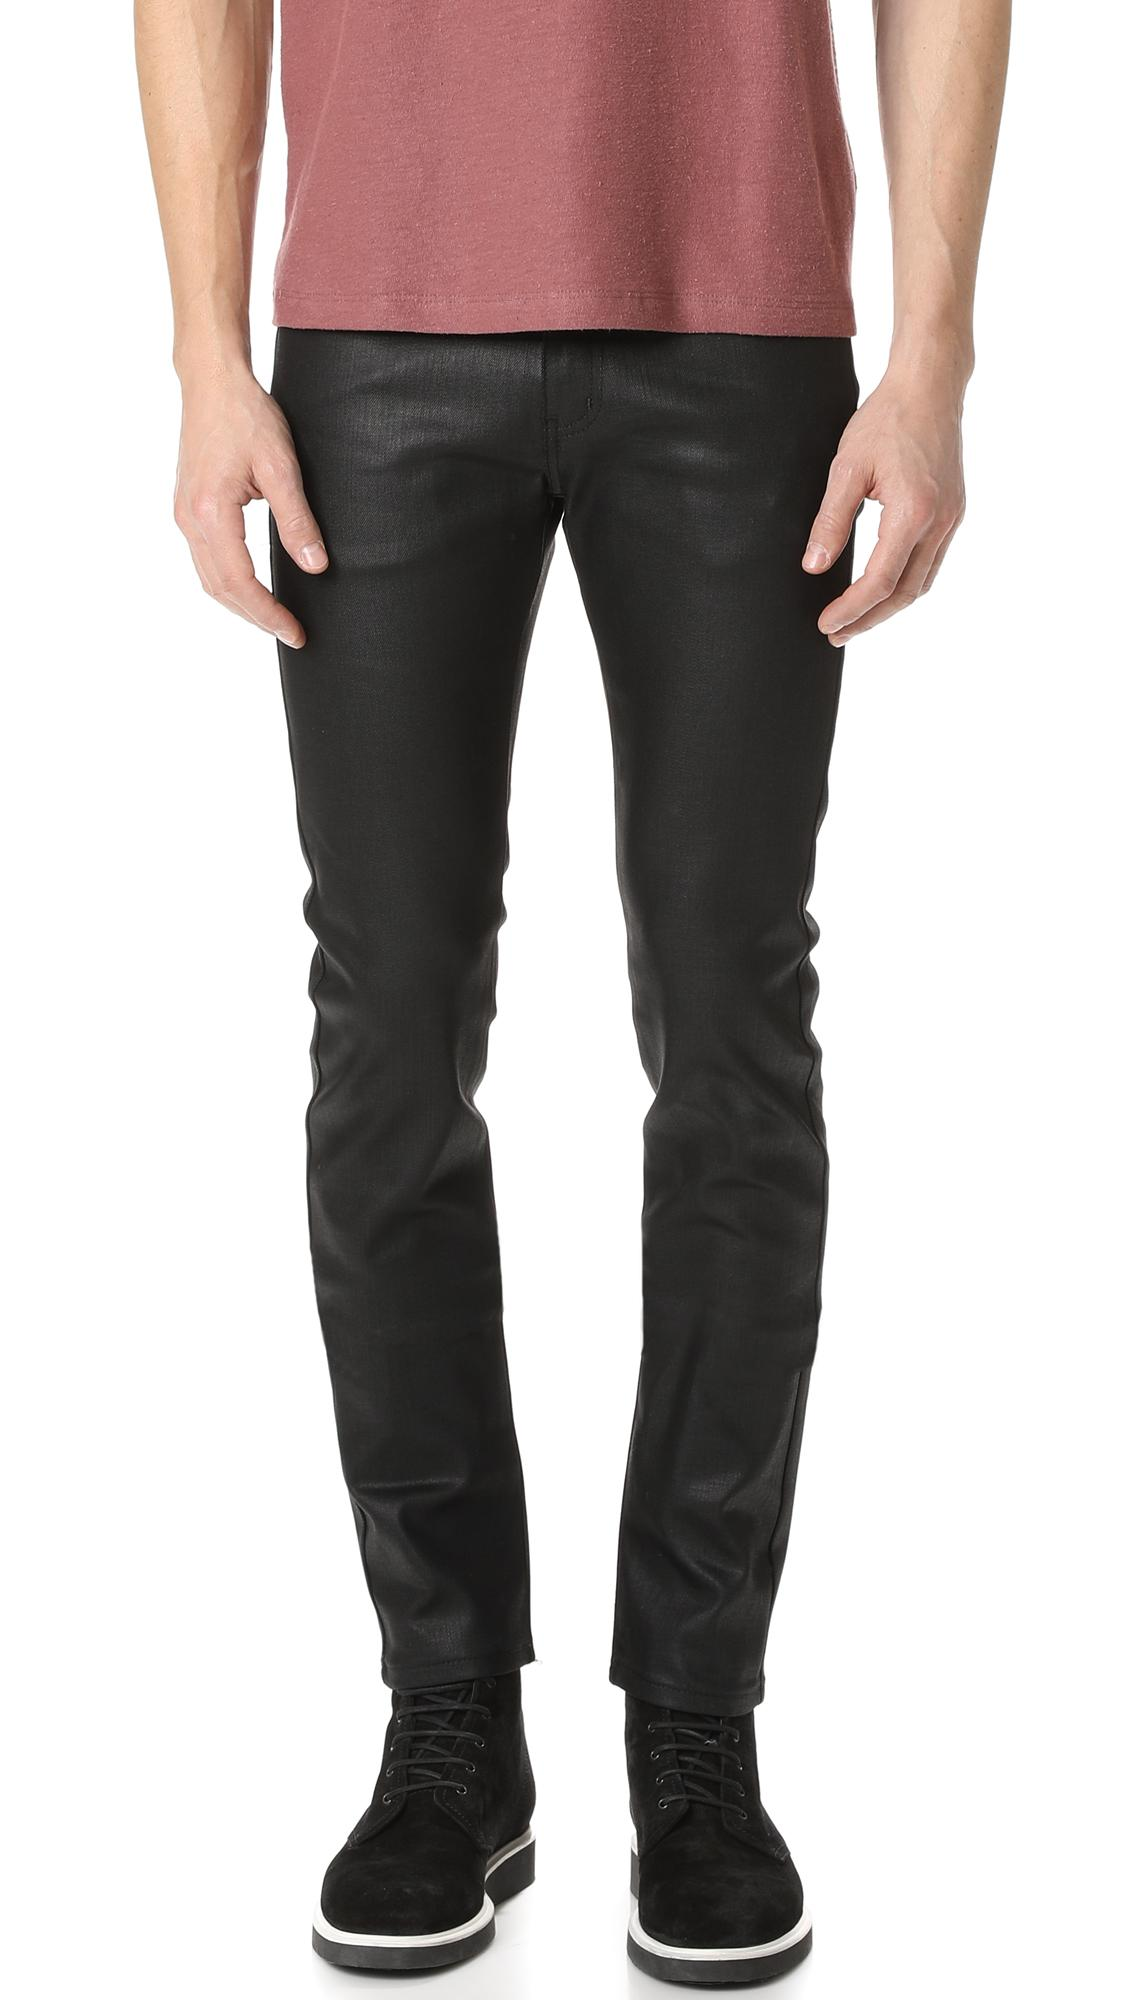 Men's DIESEL Straight-leg jeans More product details Black cotton waxed denim jeans from diesel featuring a concealed zip fastening, belt loops, side seam pockets, rear welt pockets, a leather brand patch to the rear and a slim 24software.ml: $